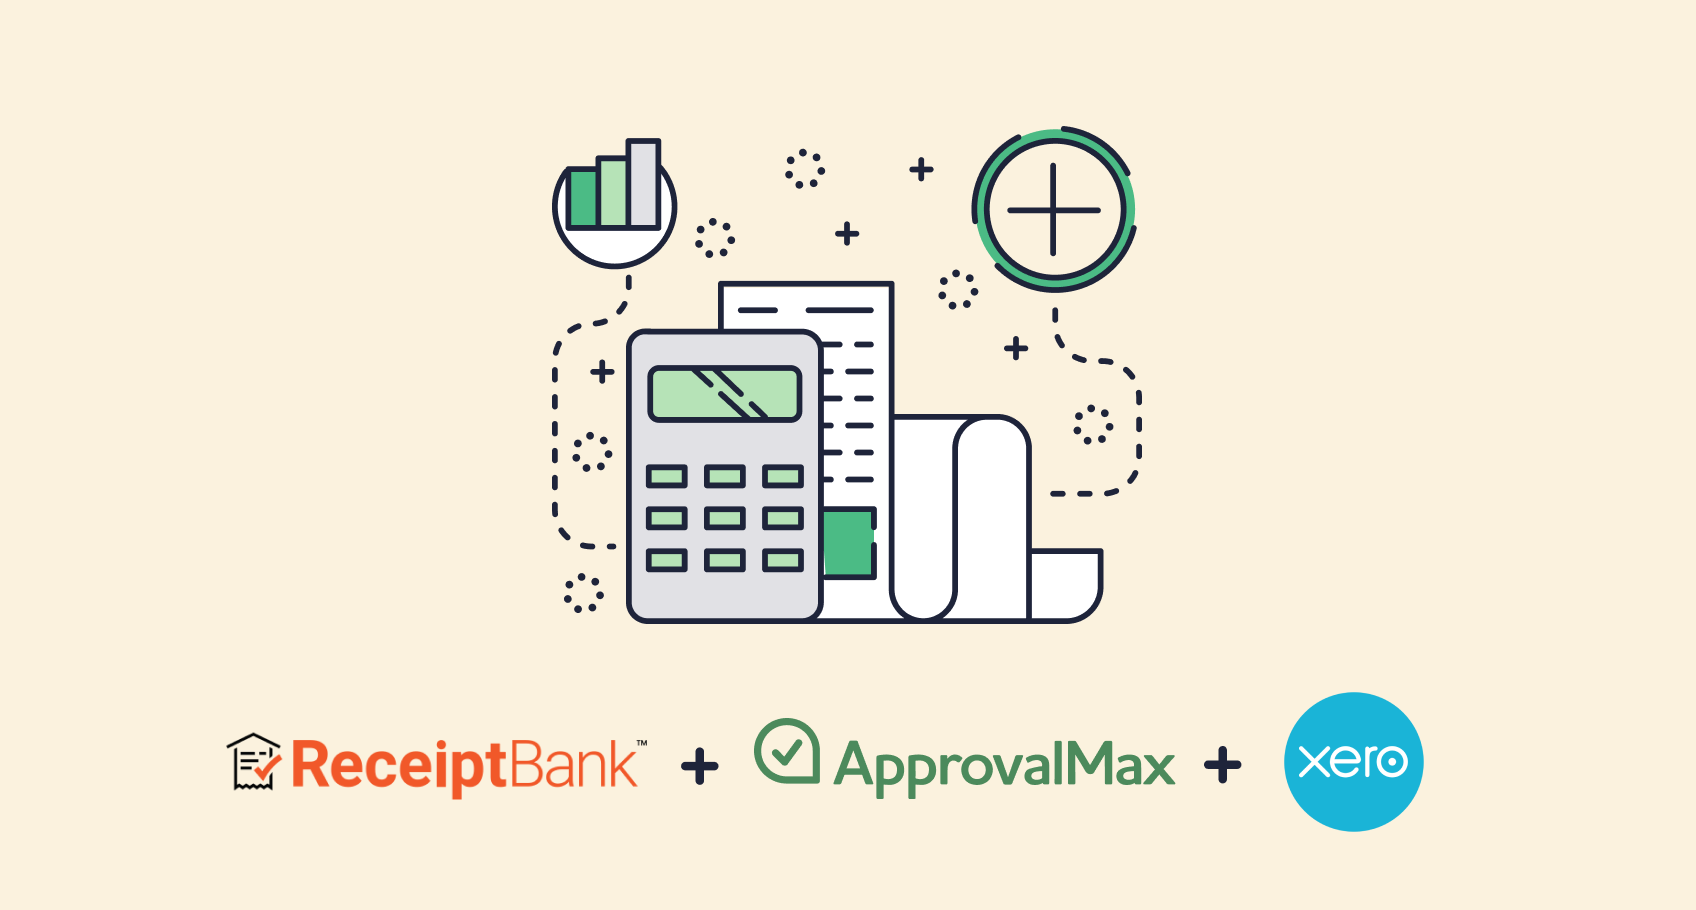 Blog_ApprovalMax+Receipt_Bank+Xero